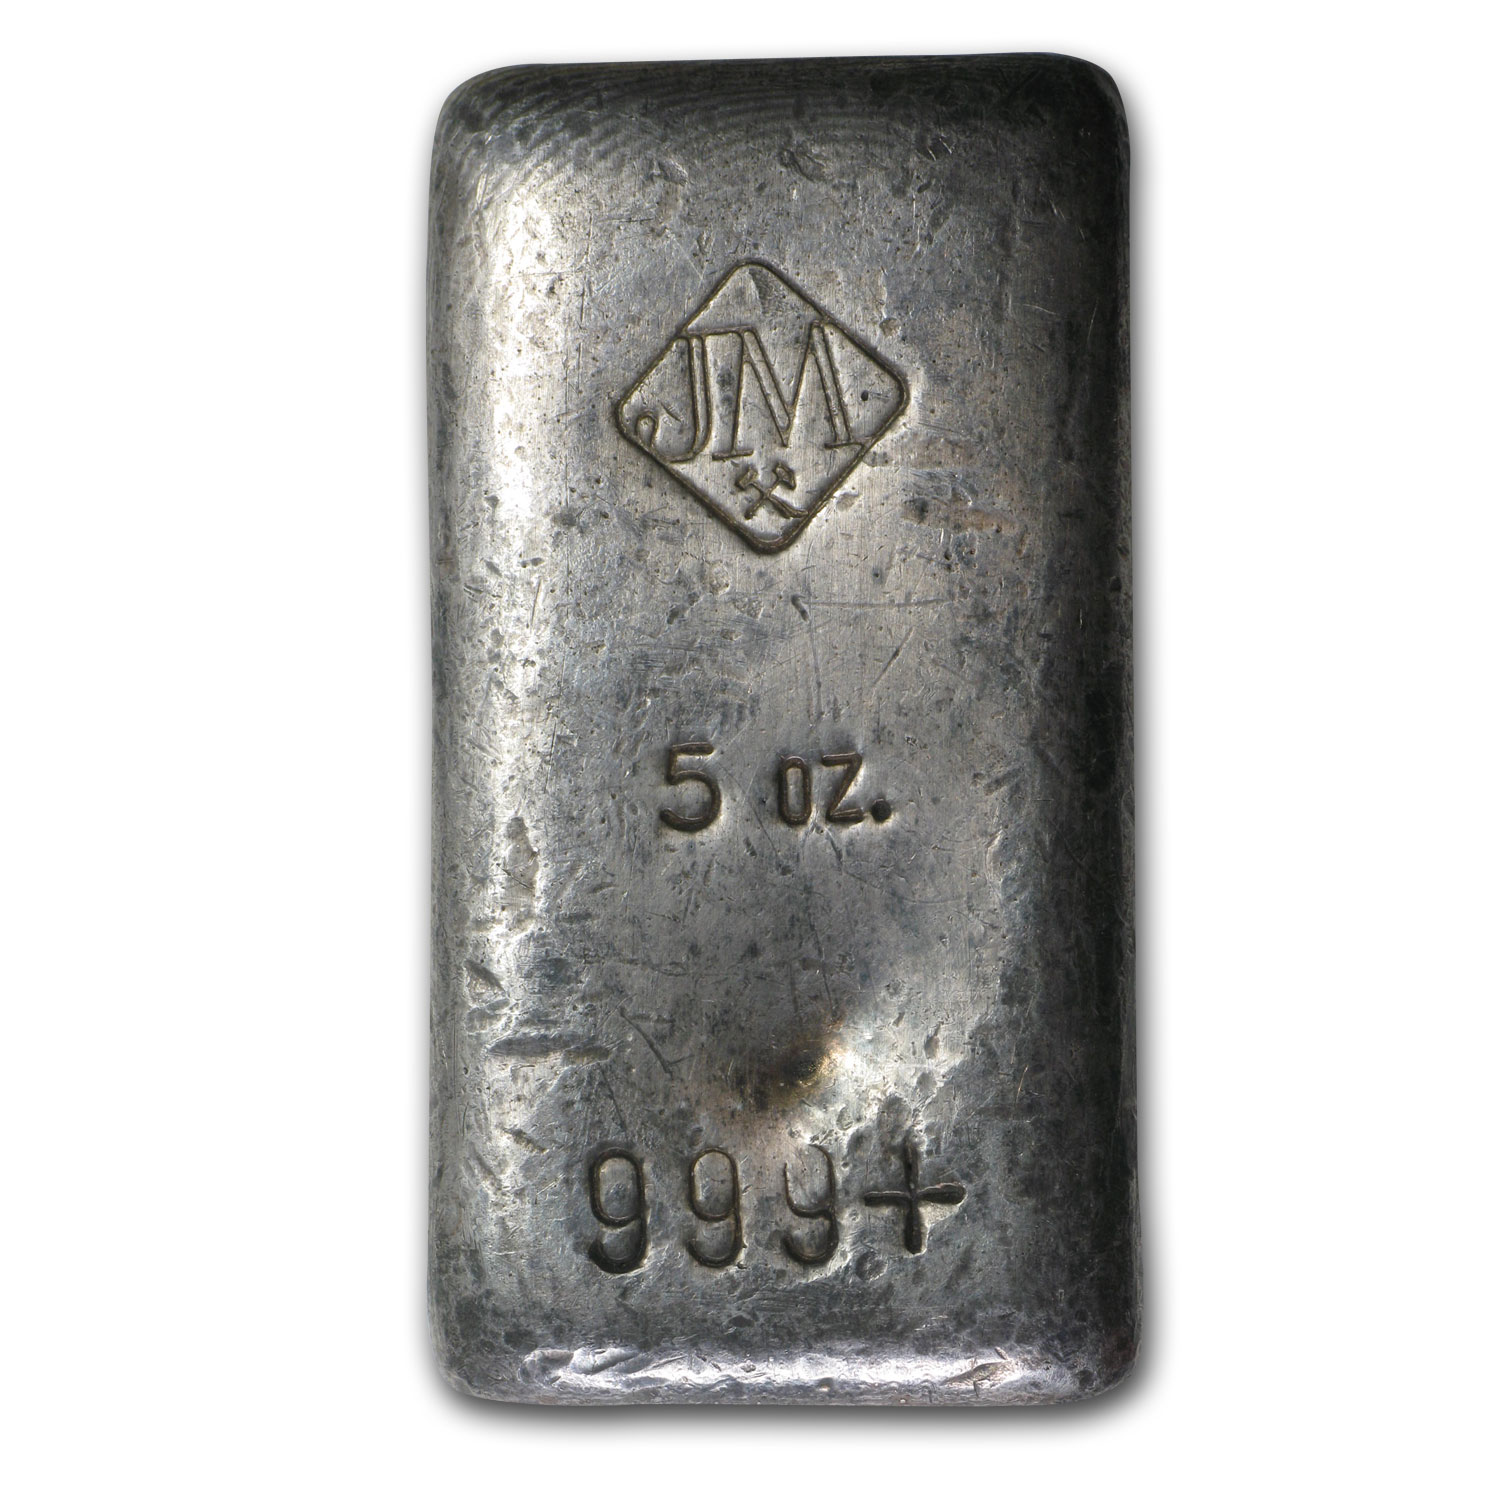 5 oz Silver Bar - Johnson Matthey (Poured, 1st Generation)